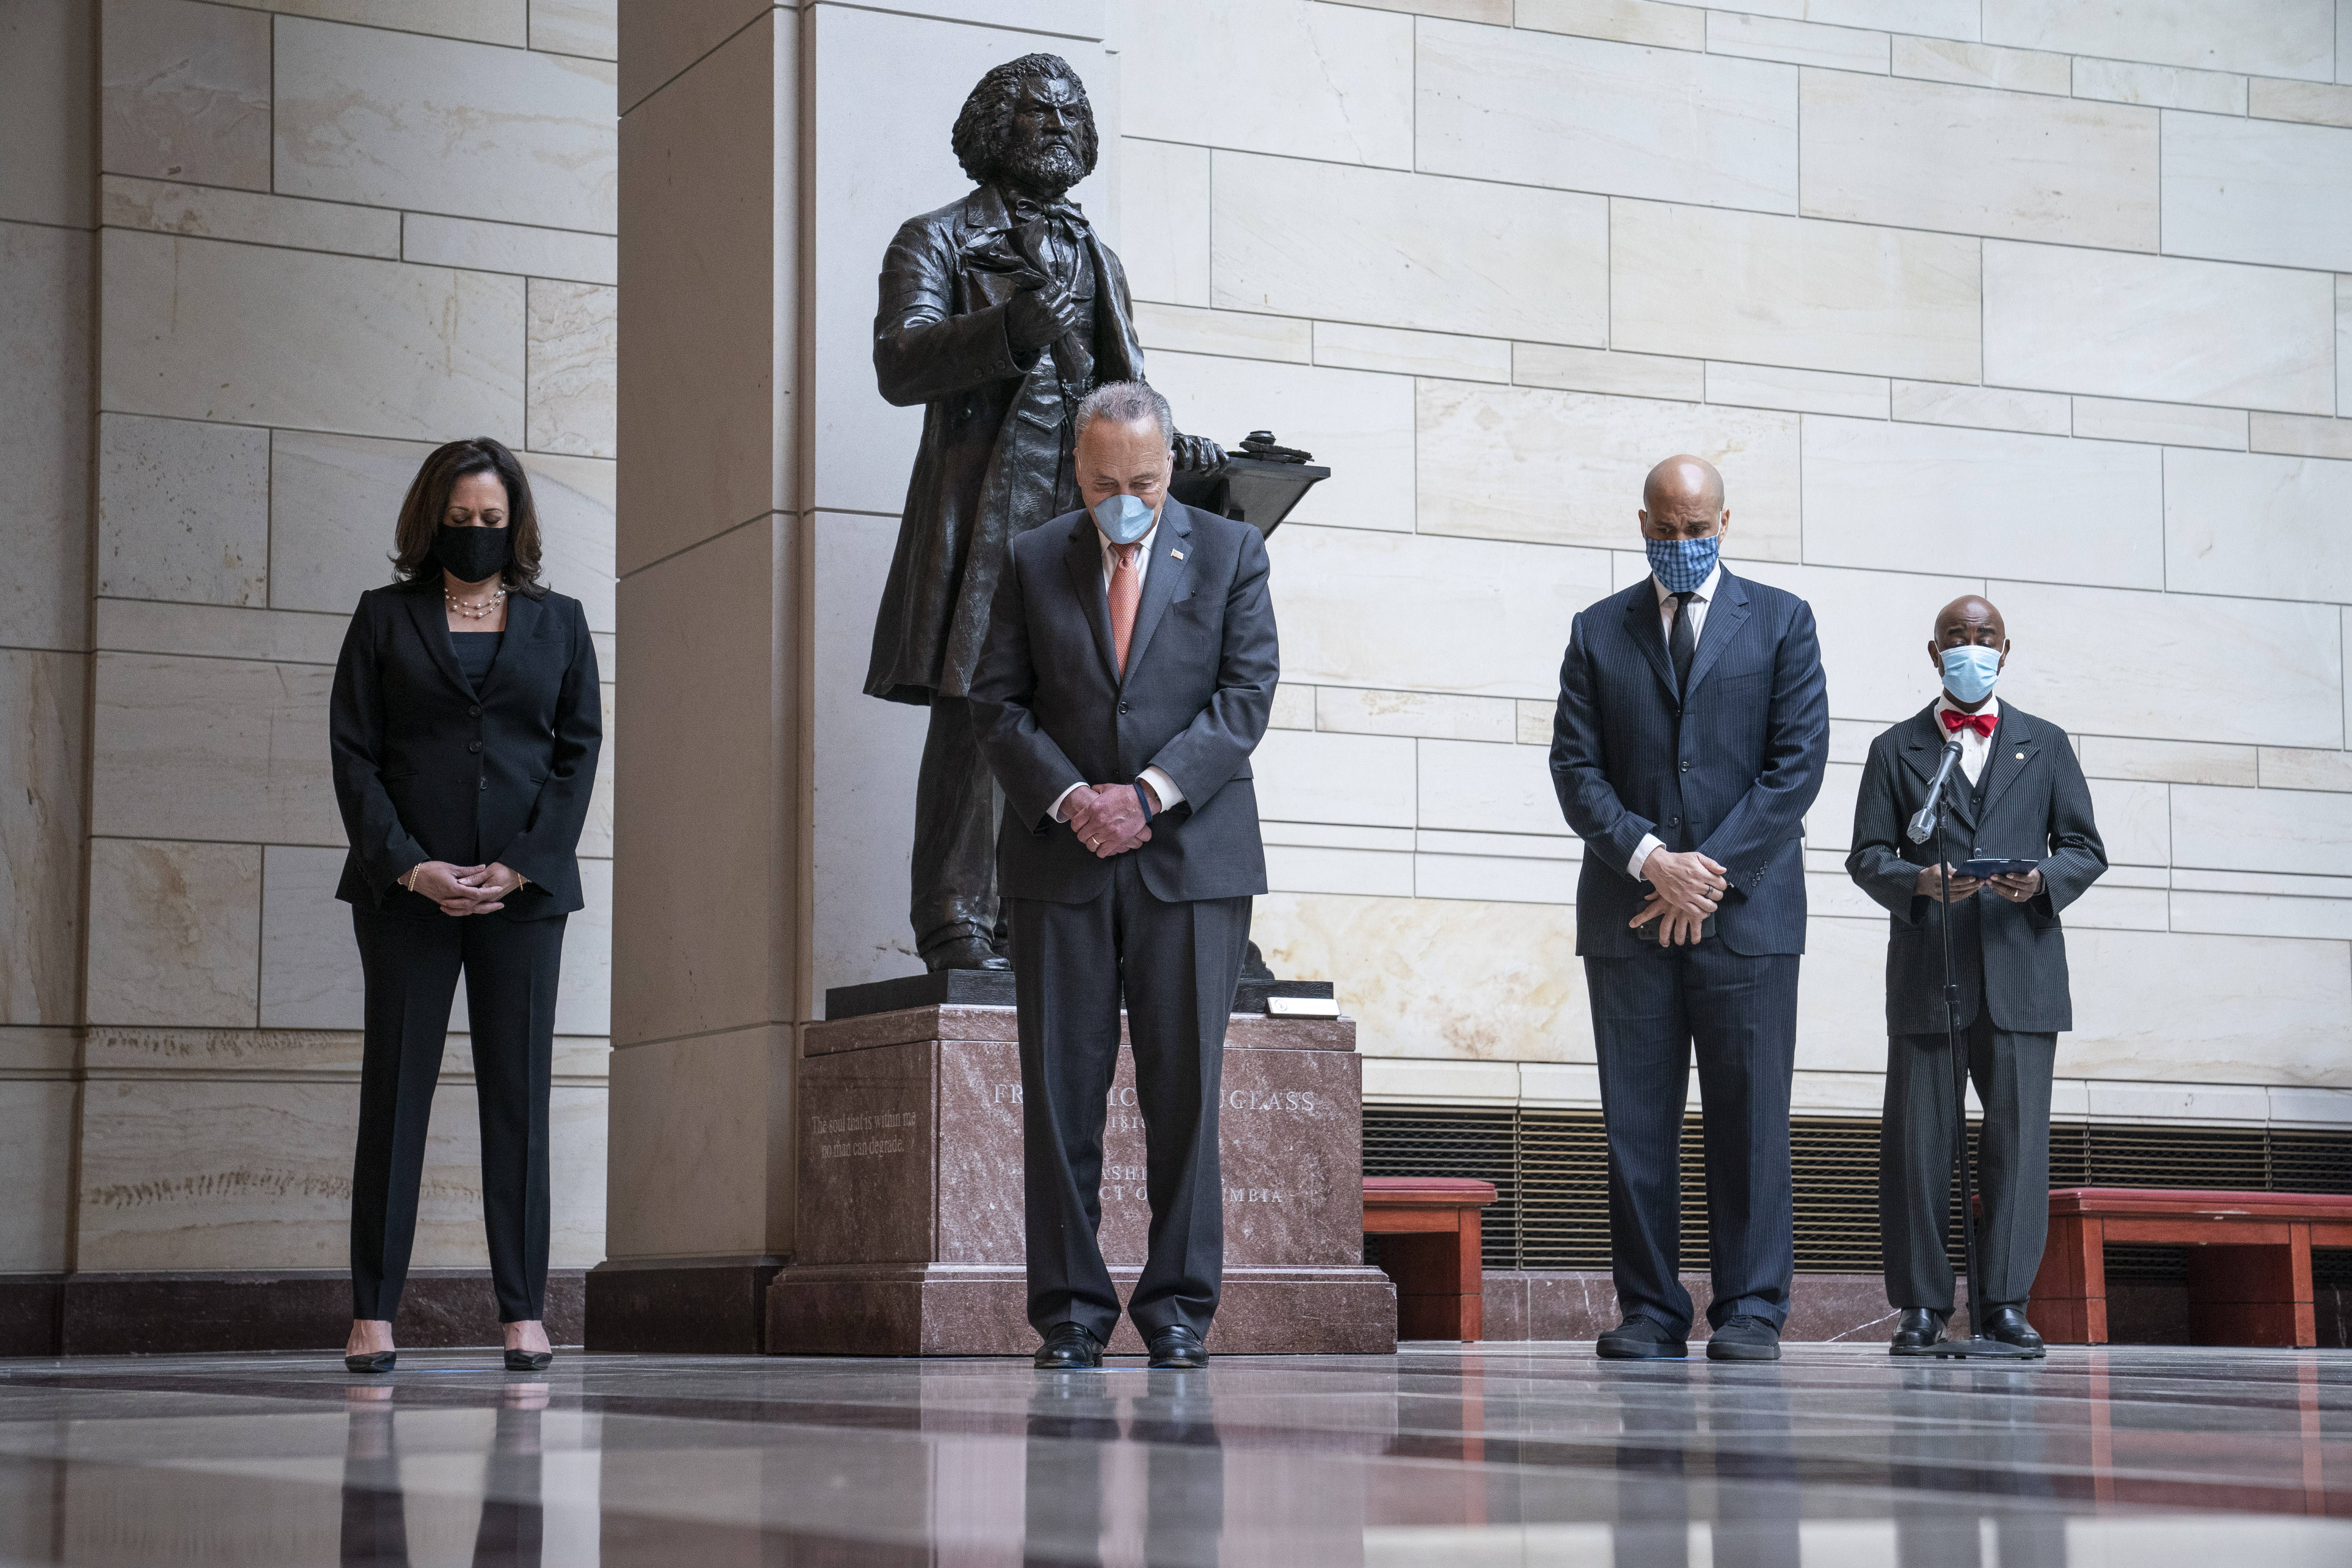 Senate Democrats, including, from left, Sen. Kamala Harris, Senate Minority Leader Chuck Schumer and Sen. Cory Booker, participate in a moment of silence at the US Capitol in Washington on June 4. The moment of silence was to honor deaths of George Floyd, Ahmaud Arbery and Breonna Taylor.